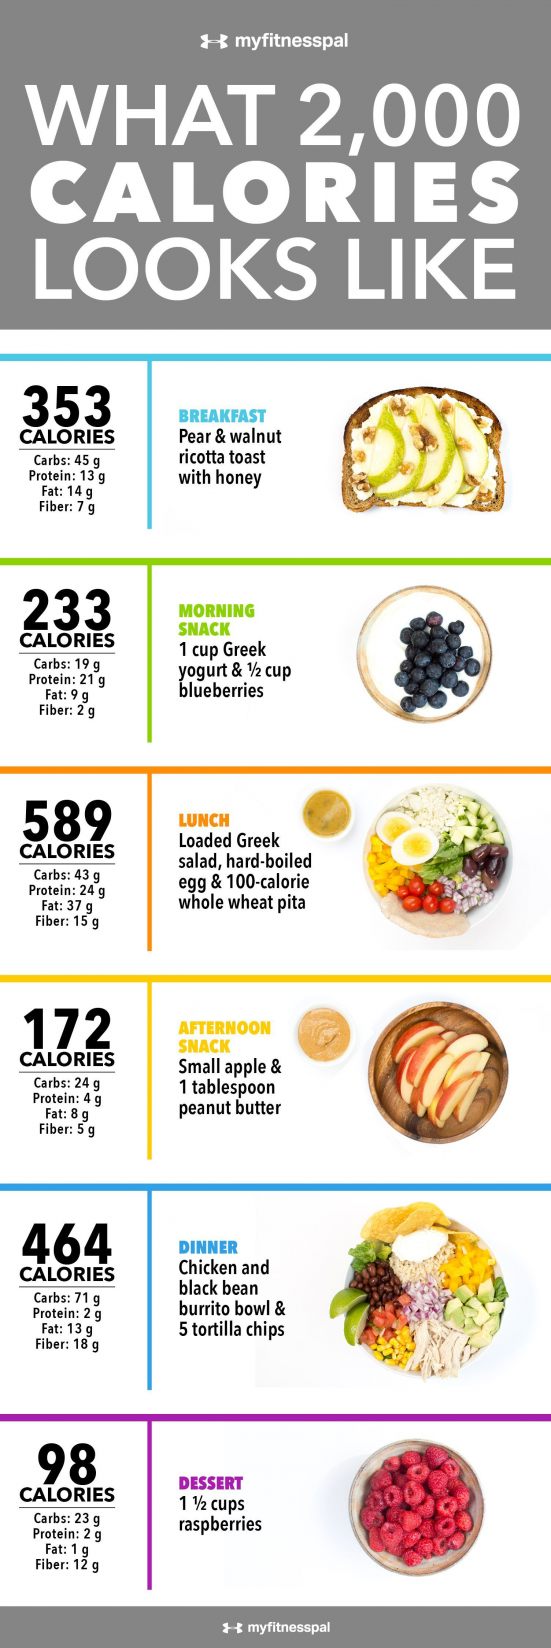 Pin On Health Tips Group Board